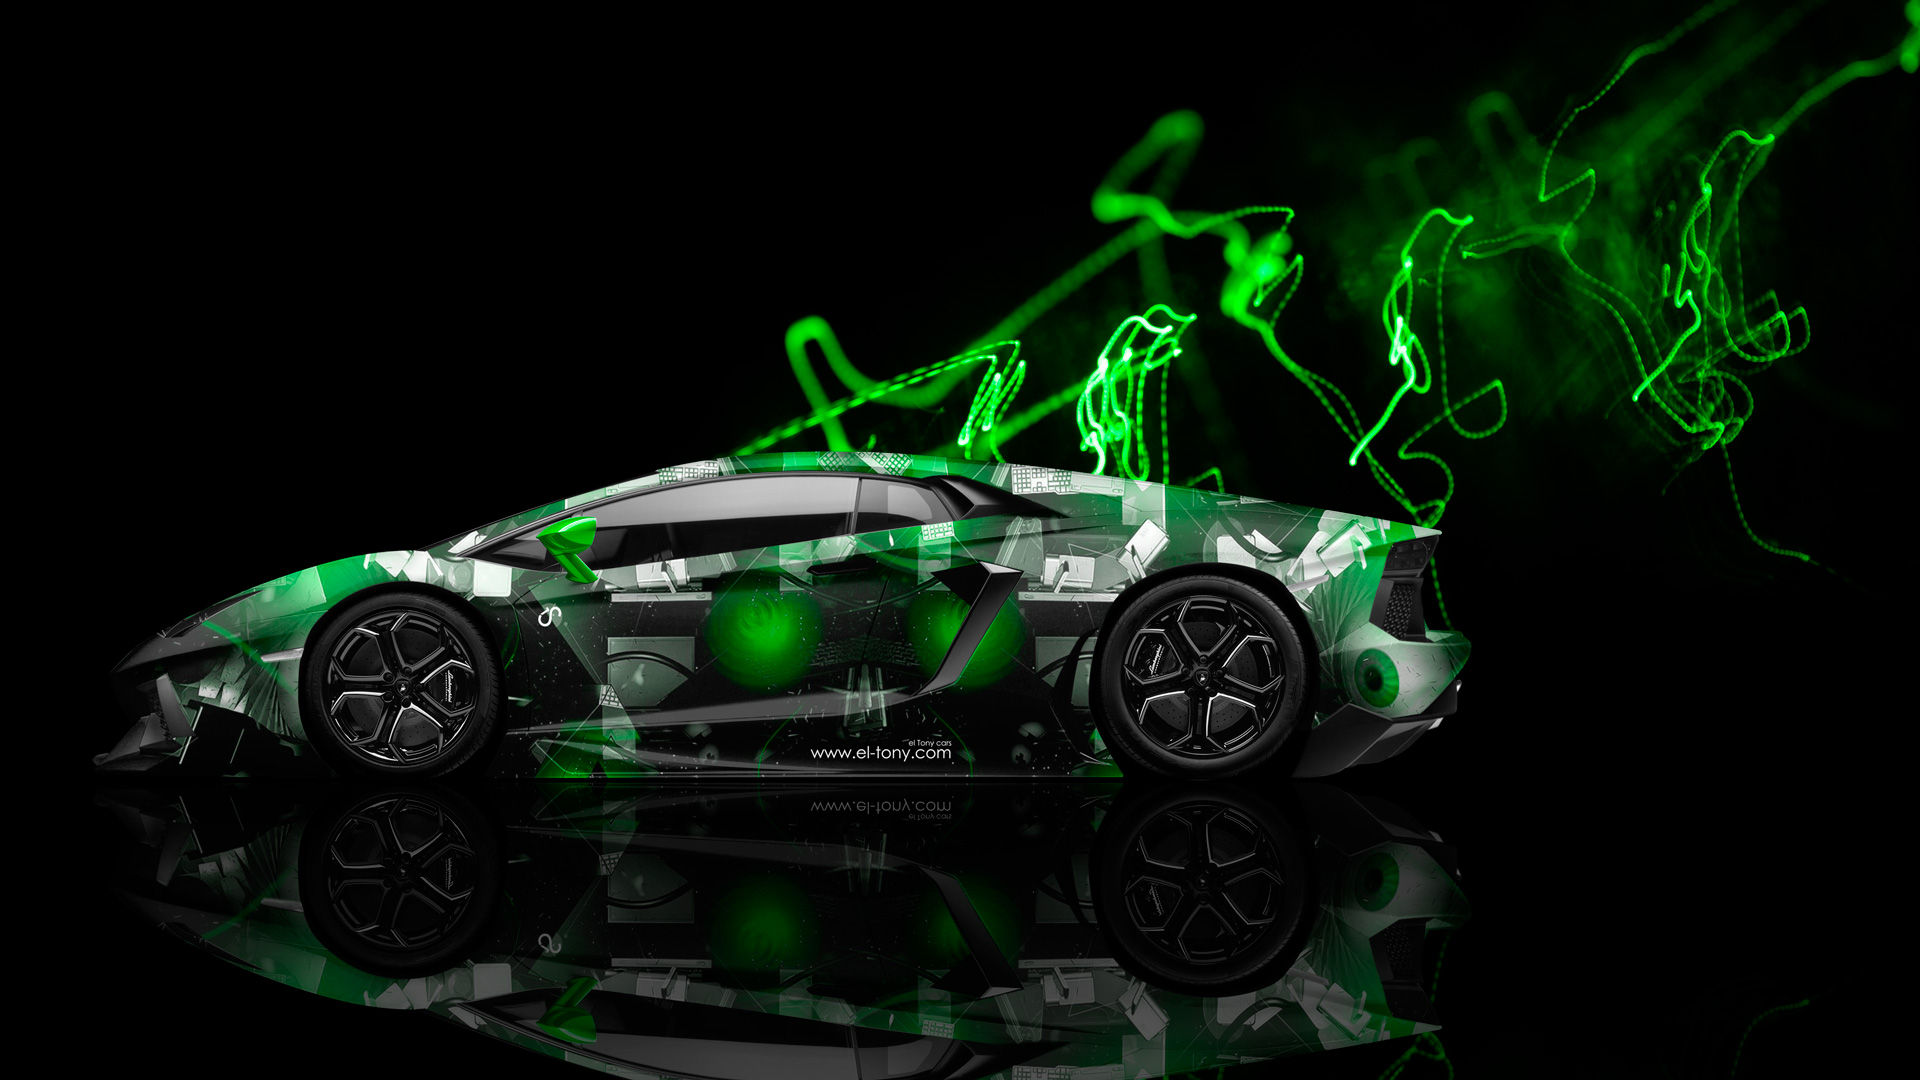 Marvelous Lamborghini Aventador Side Abstract Aerography Car 2014 Green